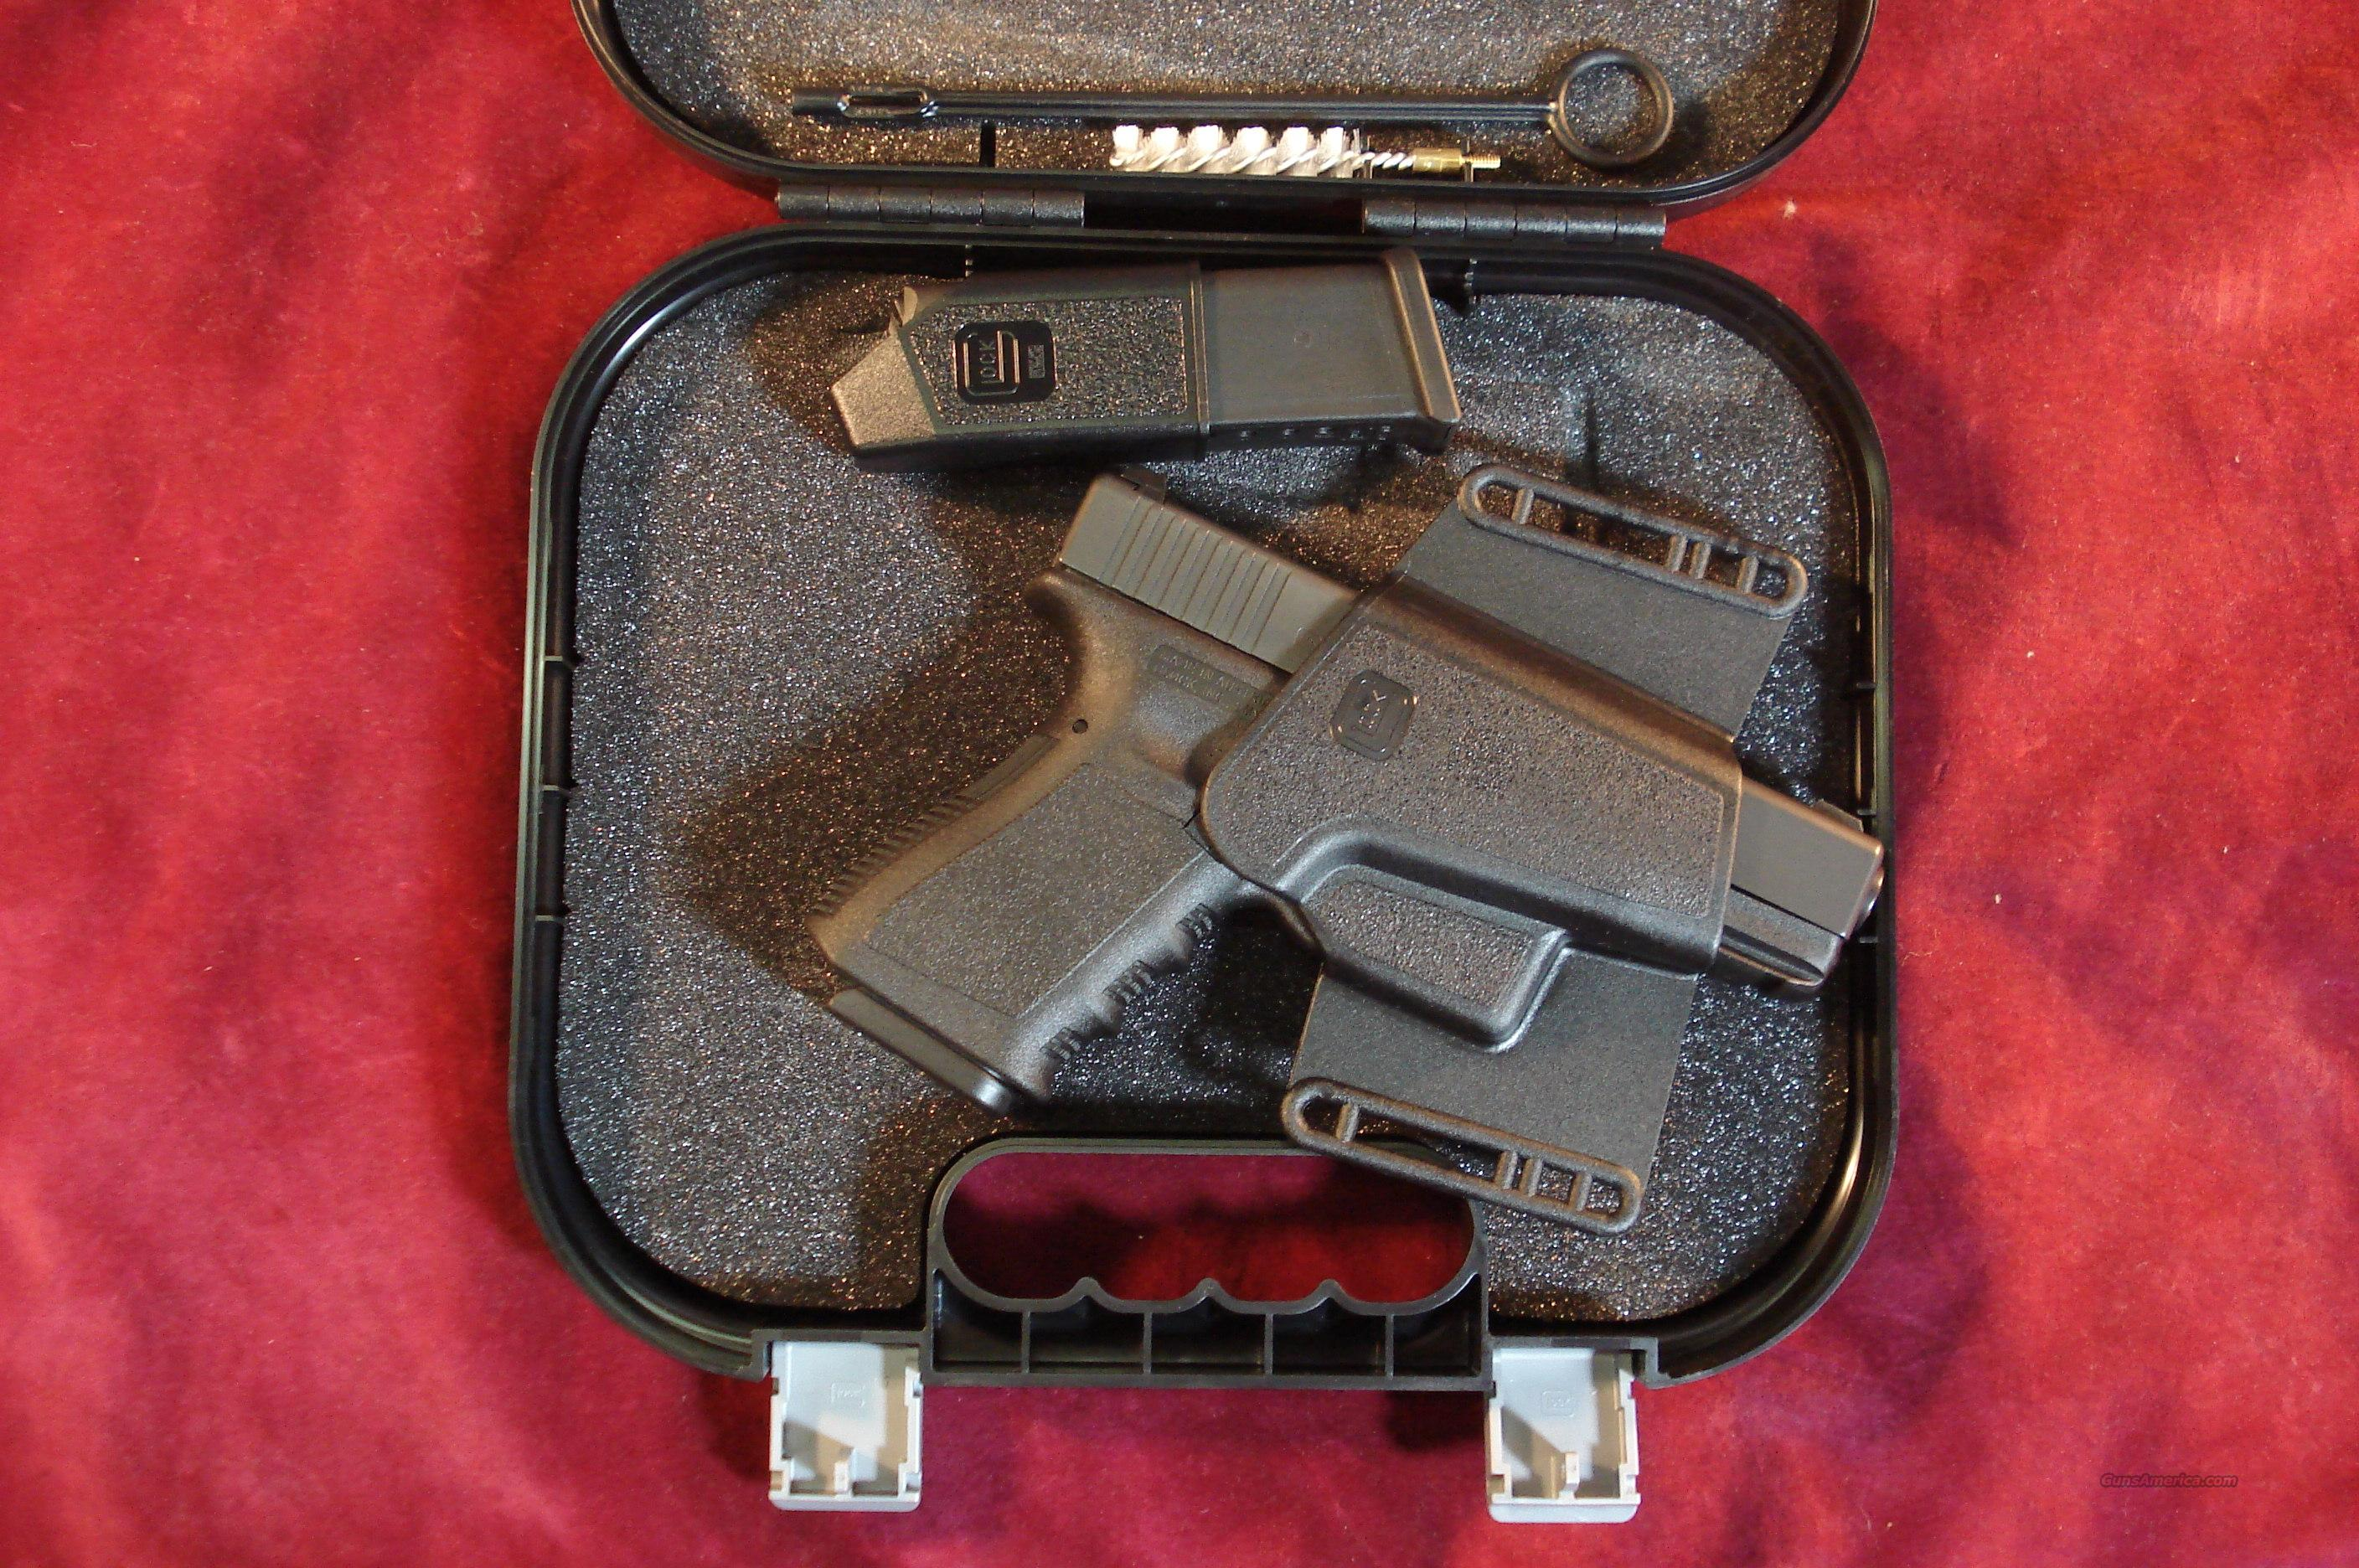 GLOCK 23 W/GLOCK NIGHT SIGHTS AND GLOCK COMBAT HOLSTER TWO 10 ROUND MAGS NEW  Guns > Pistols > Glock Pistols > 23